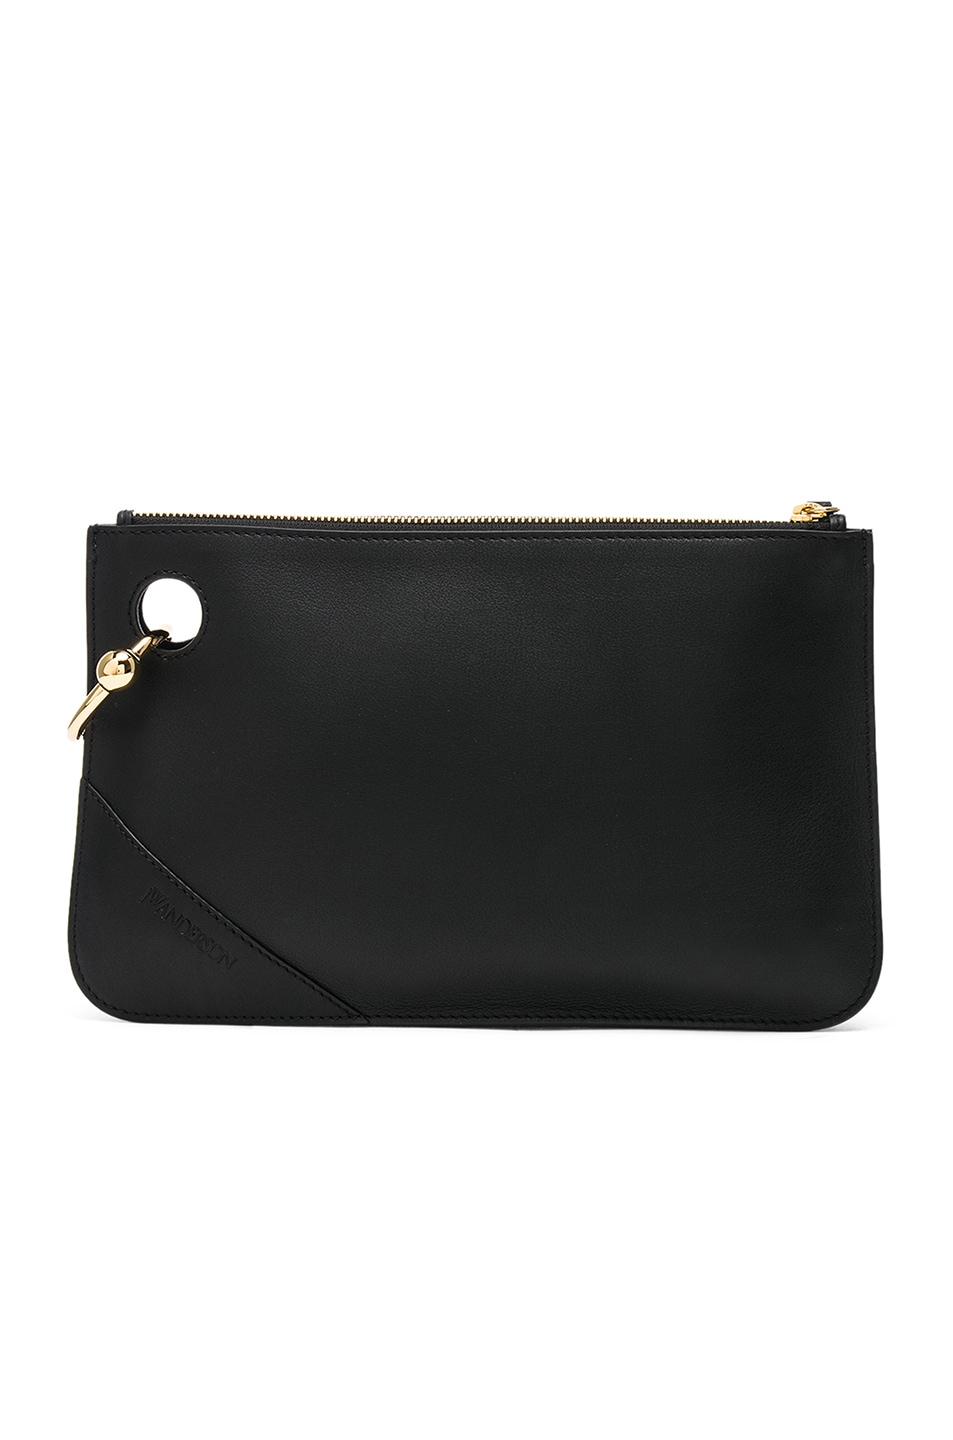 Image 1 of JW Anderson Pierce Clutch in Black